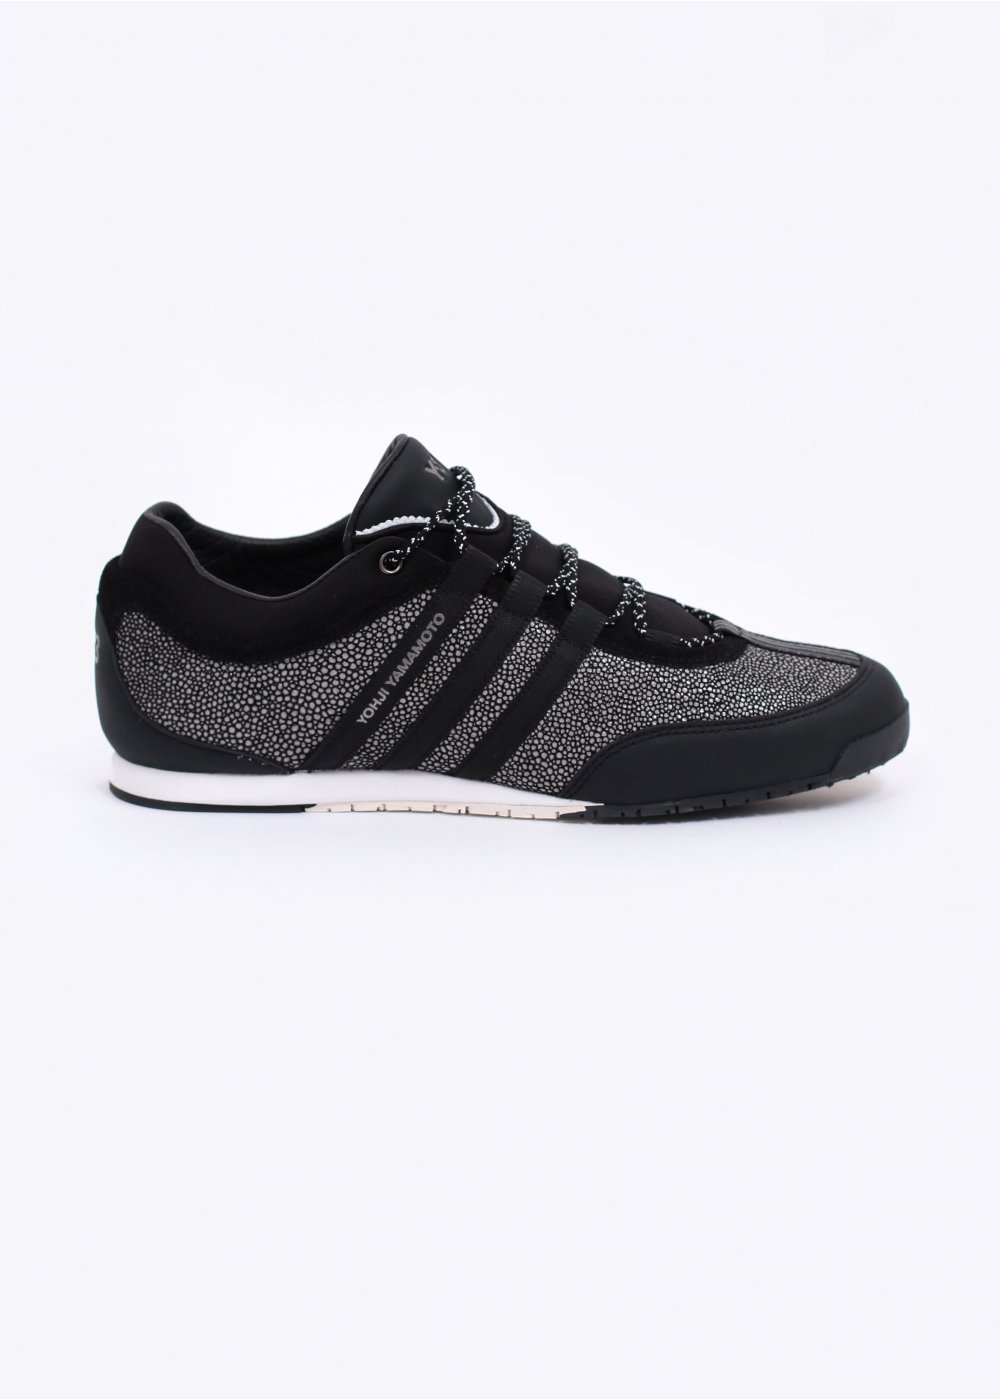 b5f0c21aad22 adidas x Y3 Boxing Trainers - Black   Grey